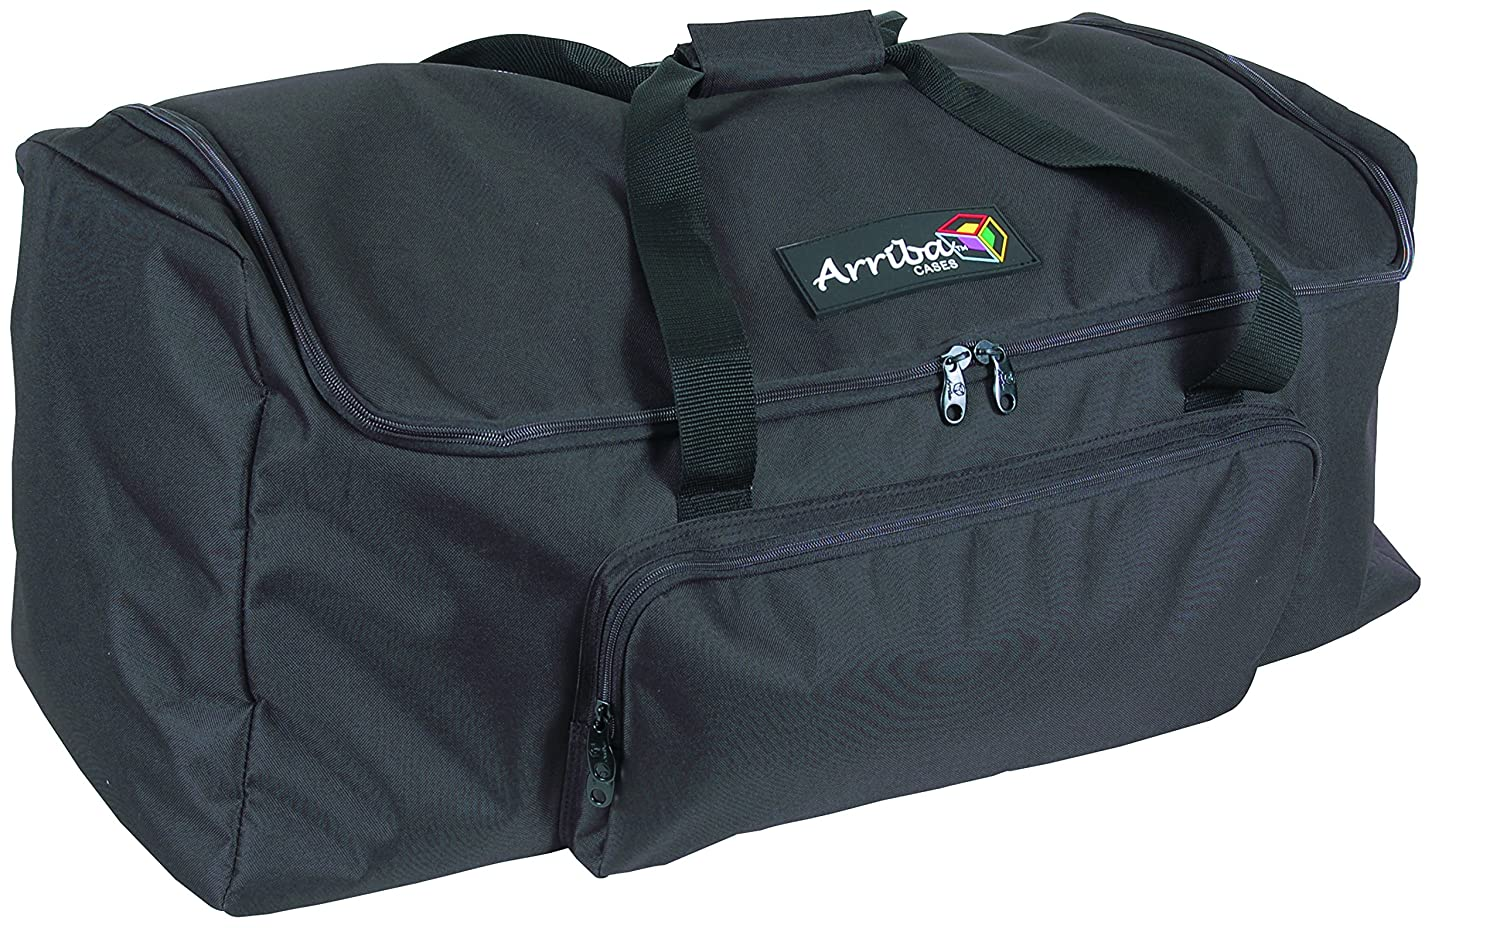 Arriba Case AC142 Padded Gear Transport Bag 25